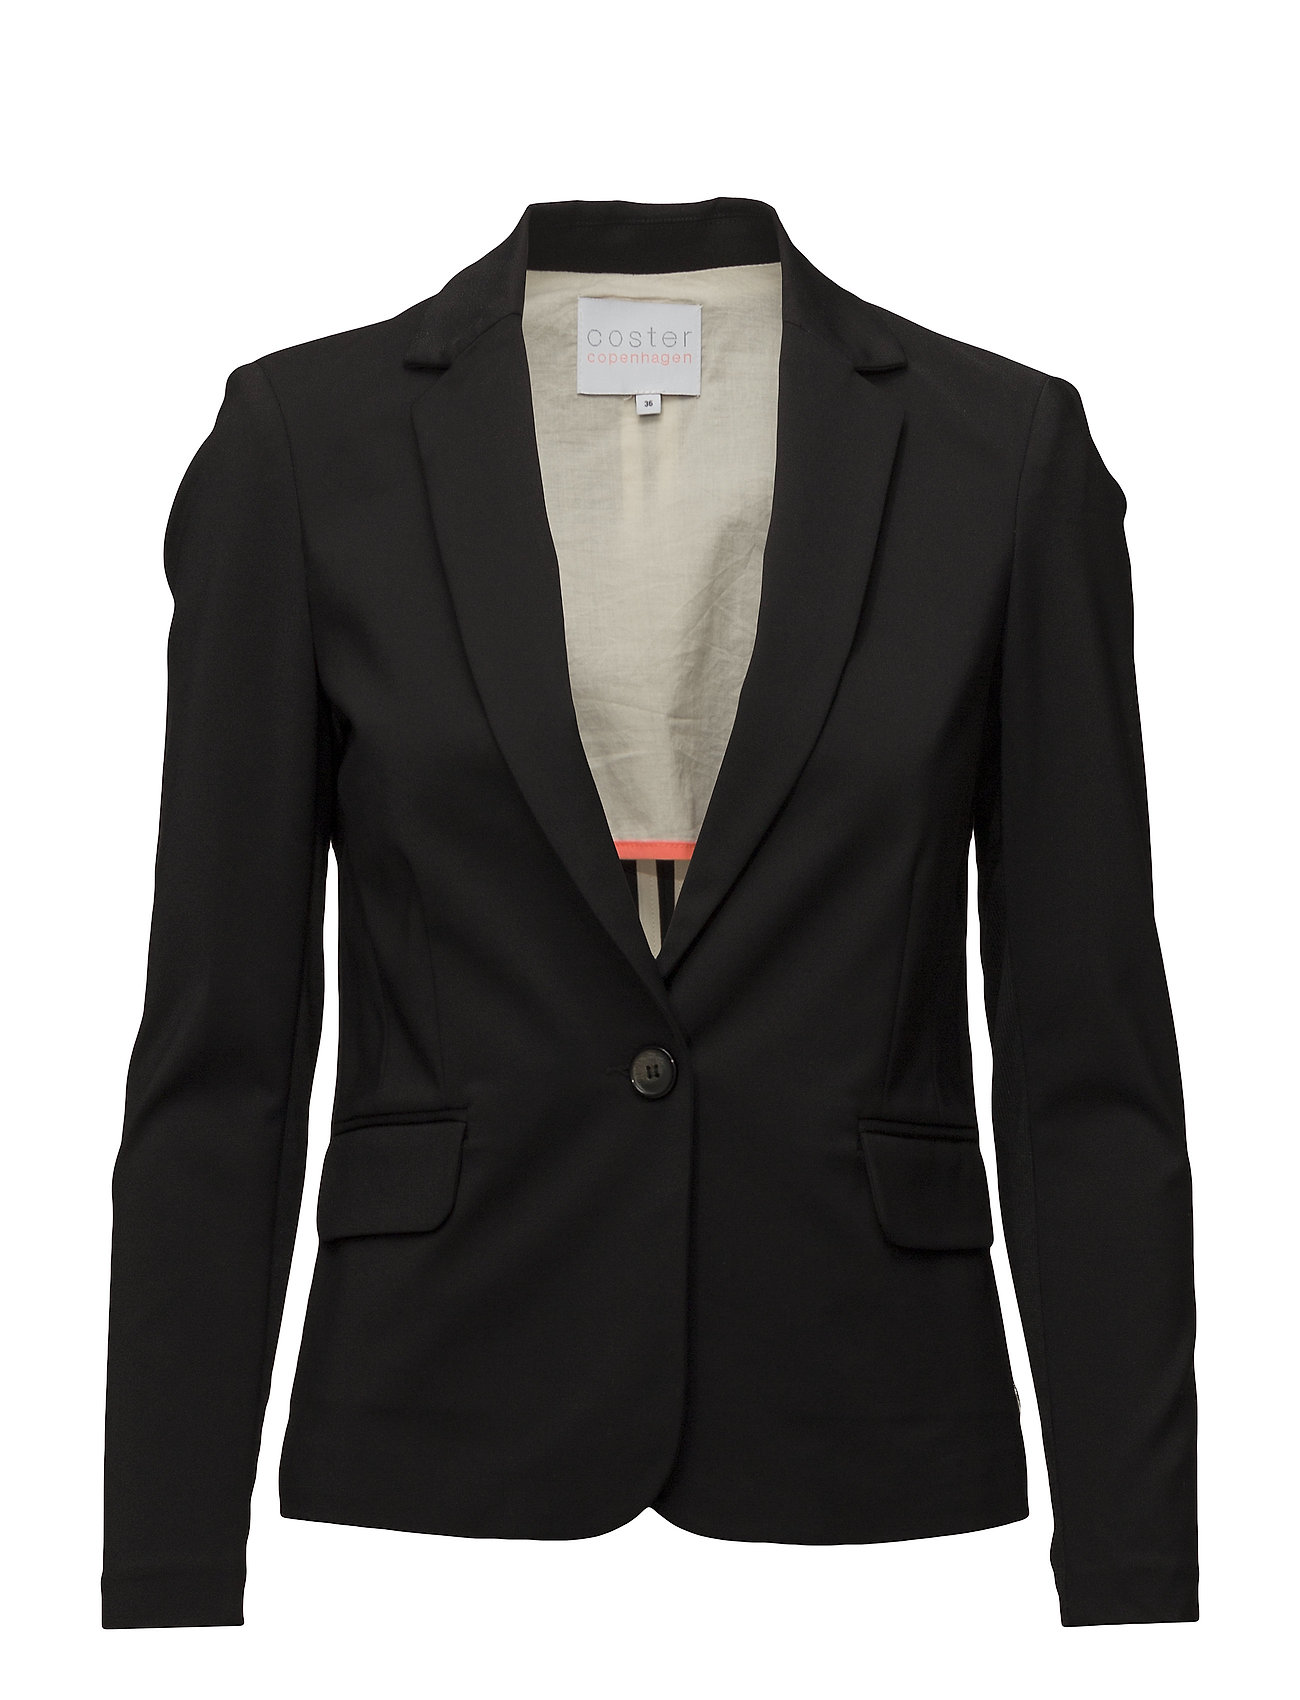 Coster Copenhagen Suit jacket - BLACK